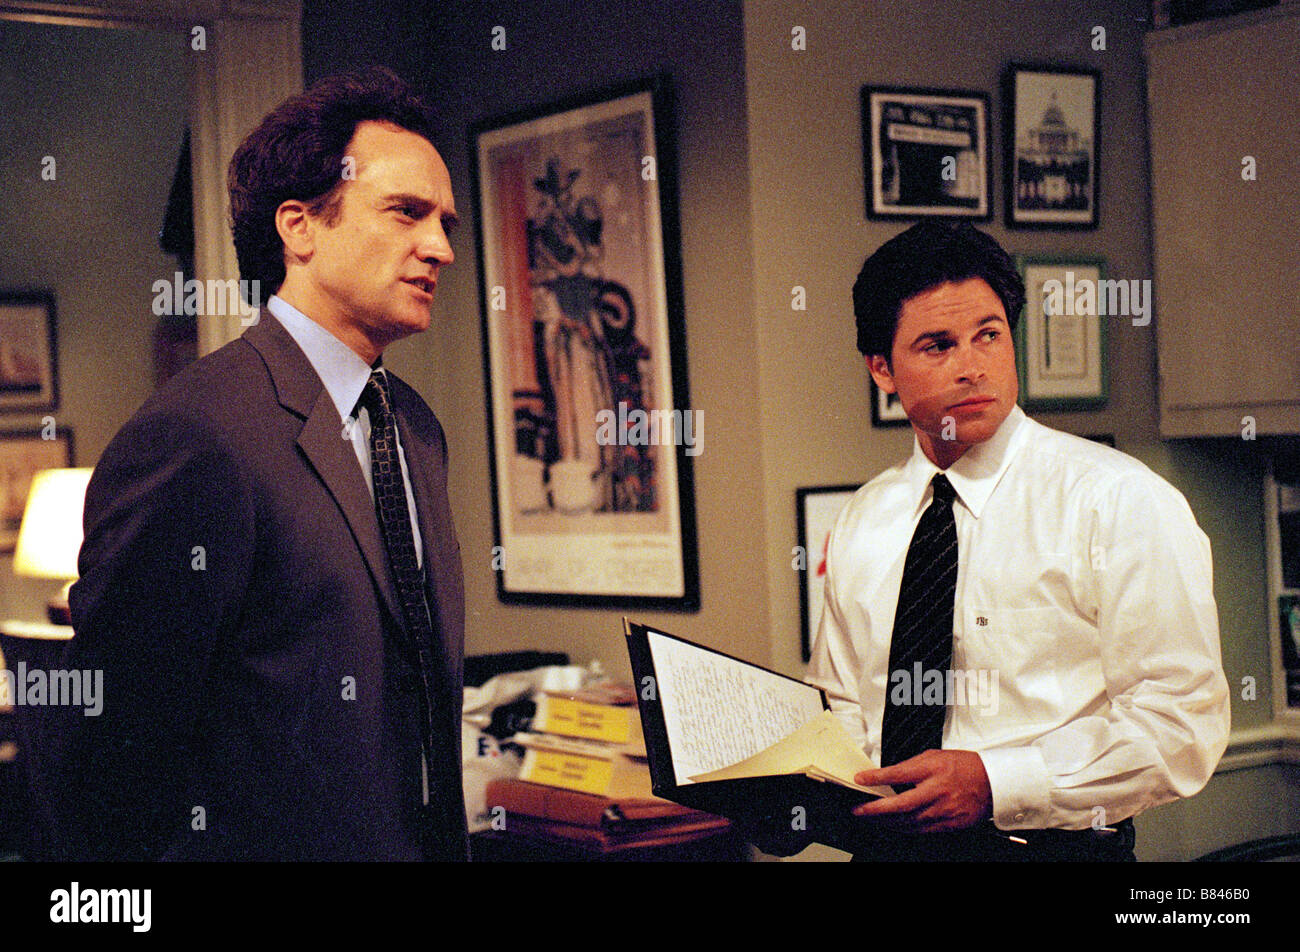 The West Wing Tv Serie 1999 2006 Usa Bradley Whitford Rob Lowe